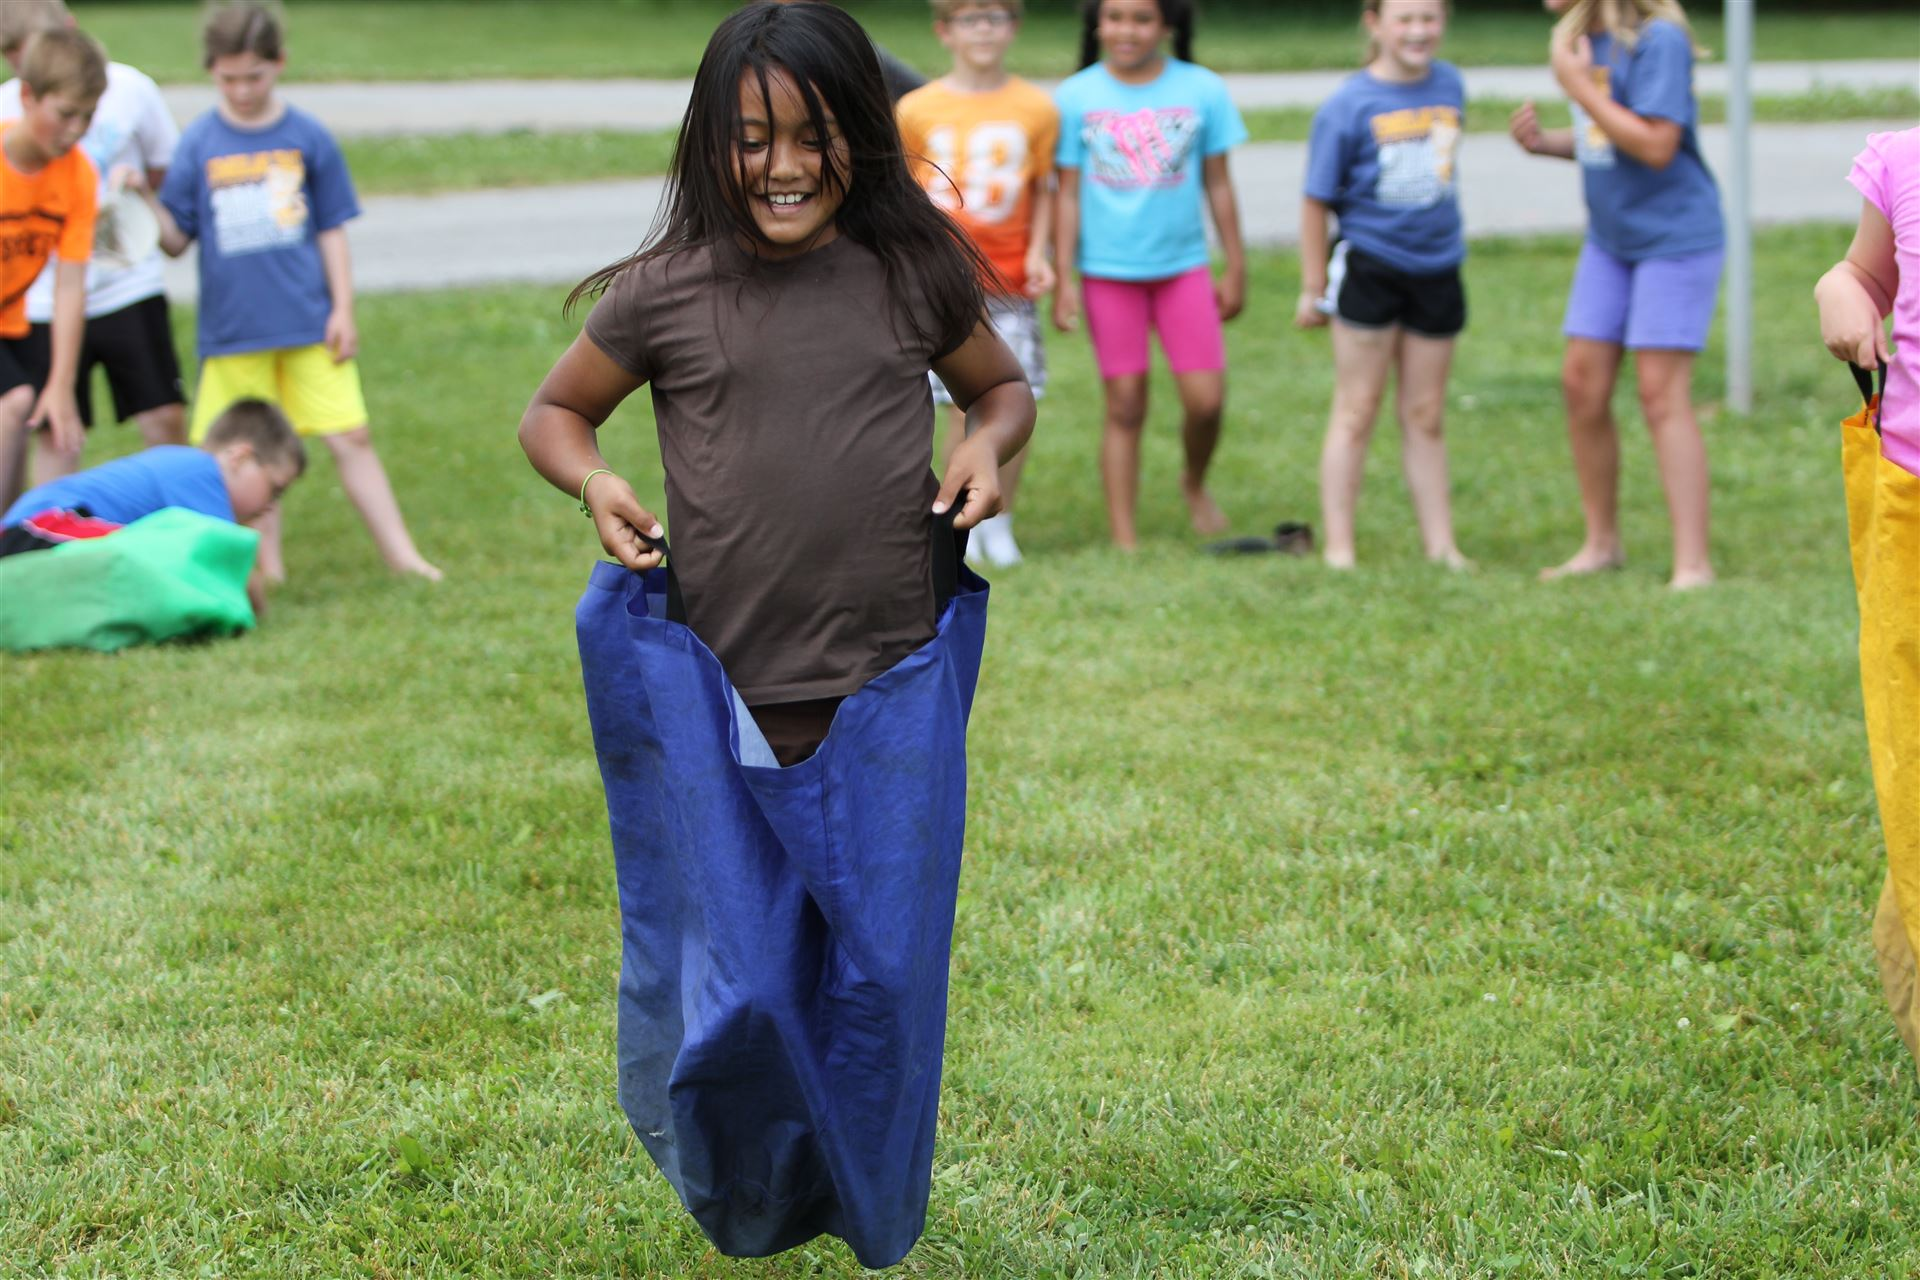 Cumberland Trace Elementary Field Day